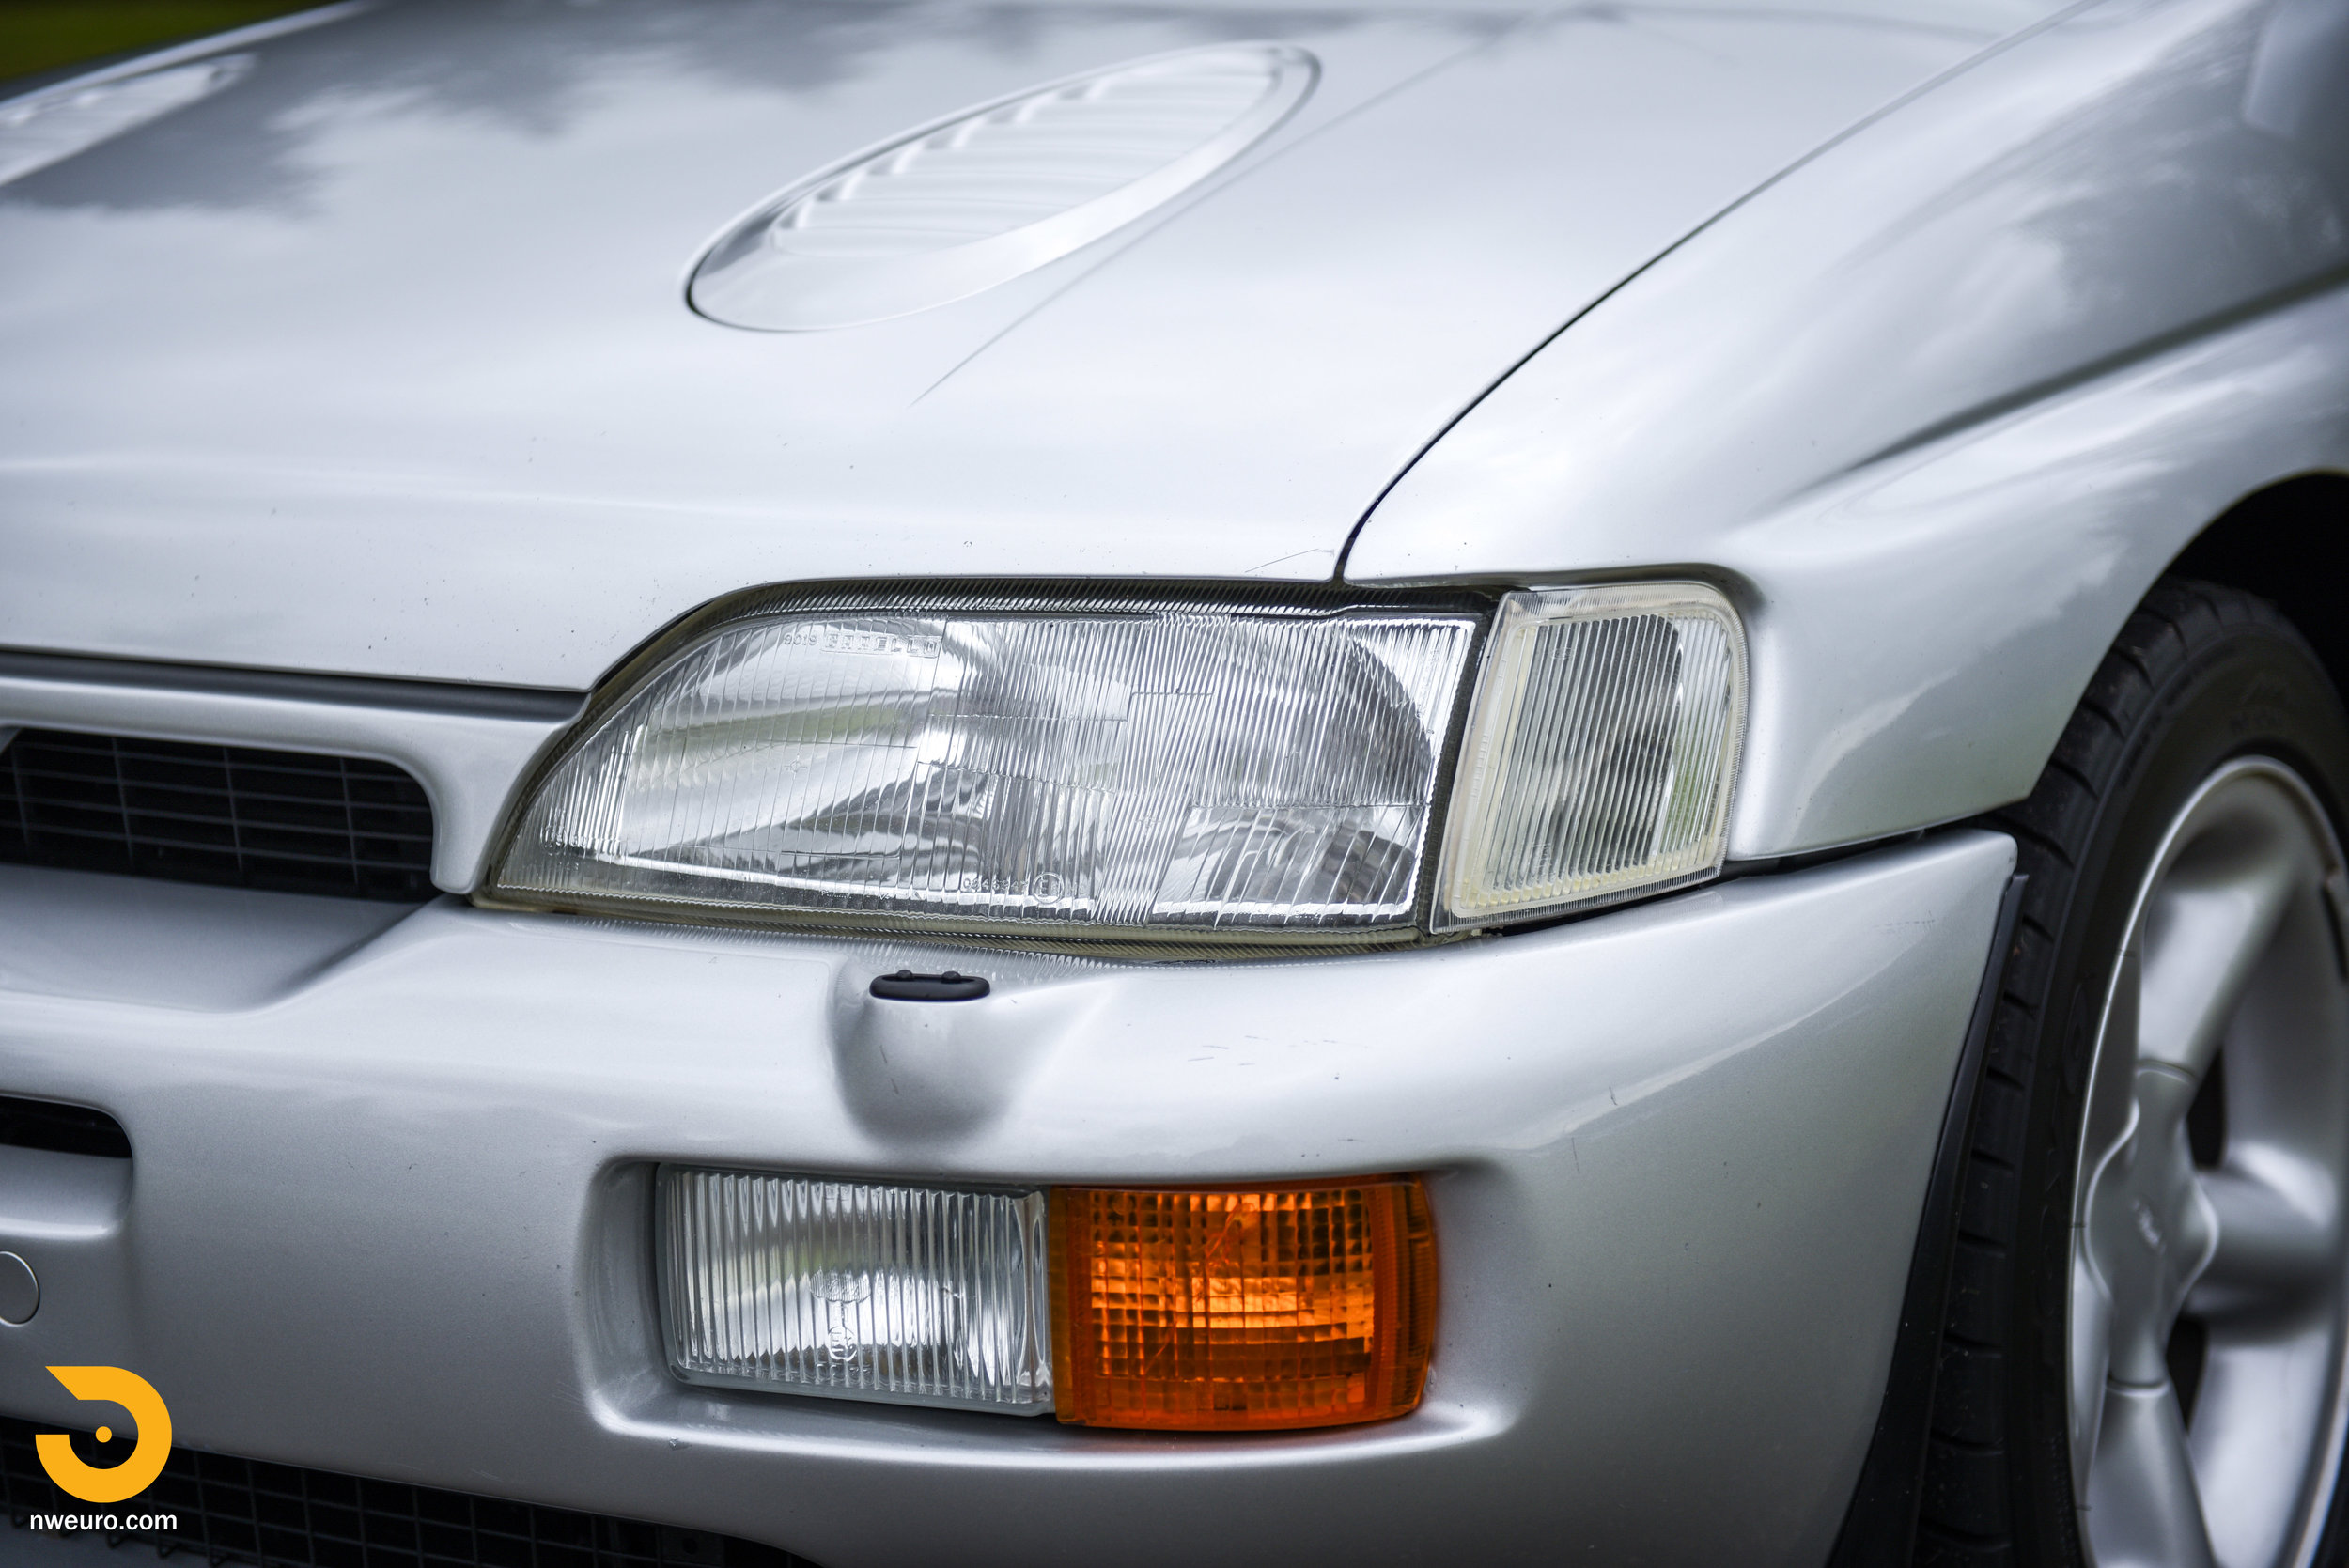 1995 Ford Escort Cosworth RS Silver-29.jpg